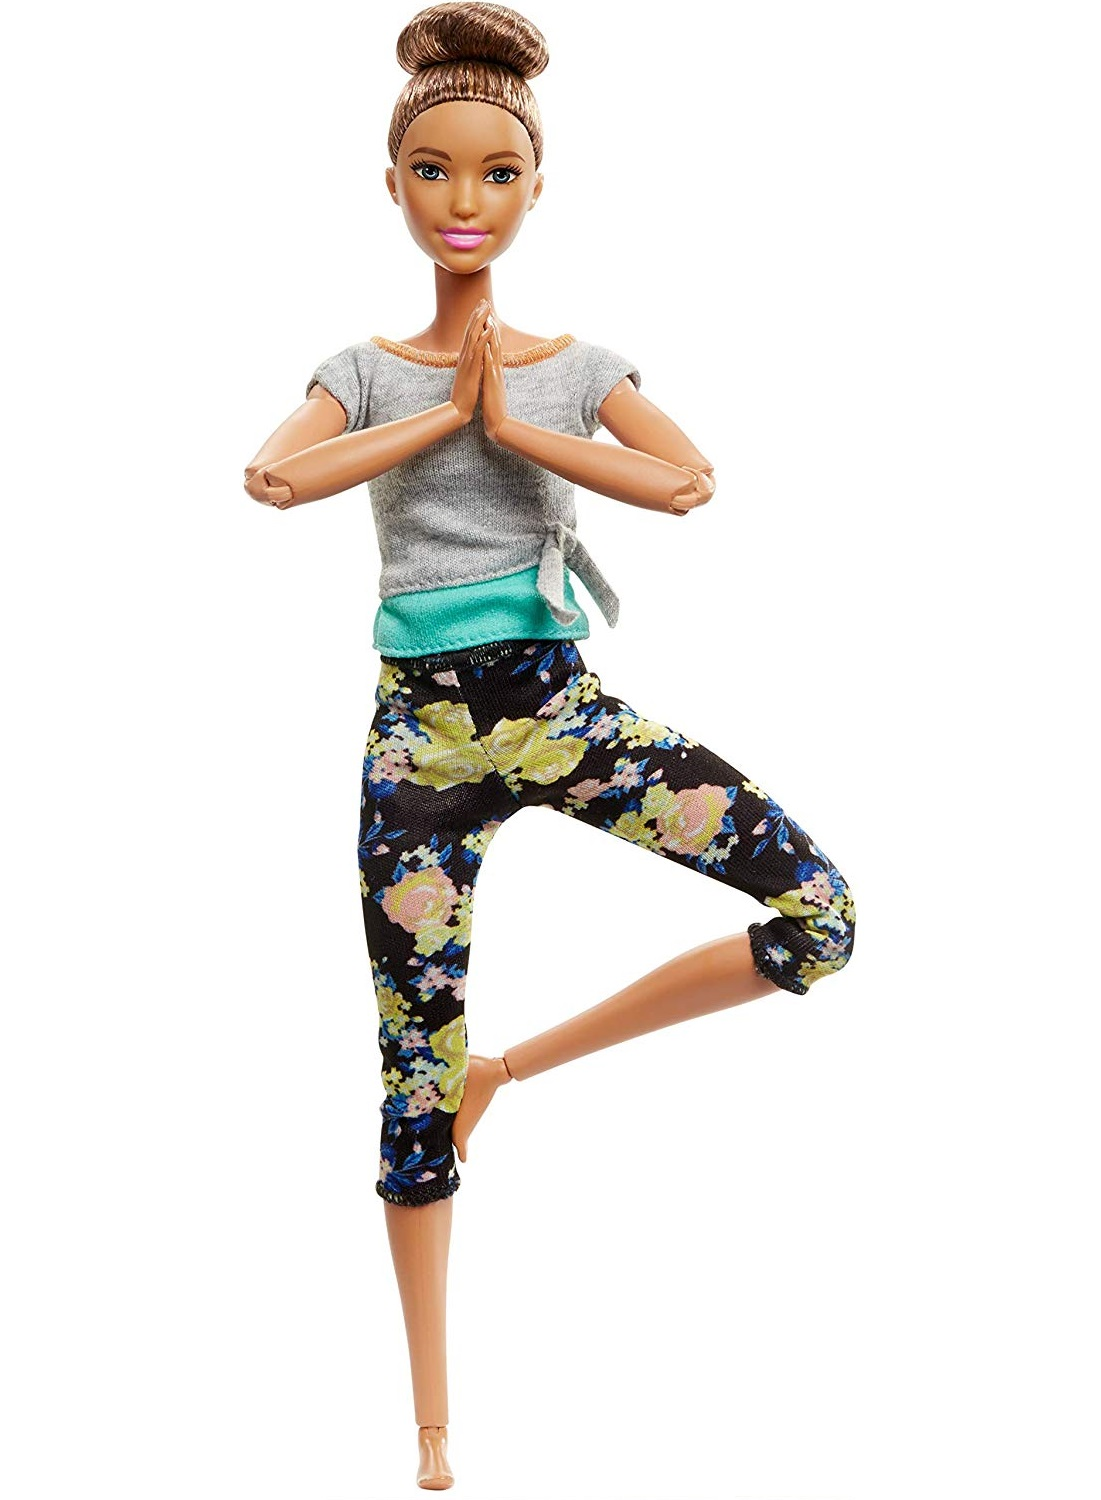 Barbie® Lalka Made To Move™ Fitness Mattel FTG80 FTG82